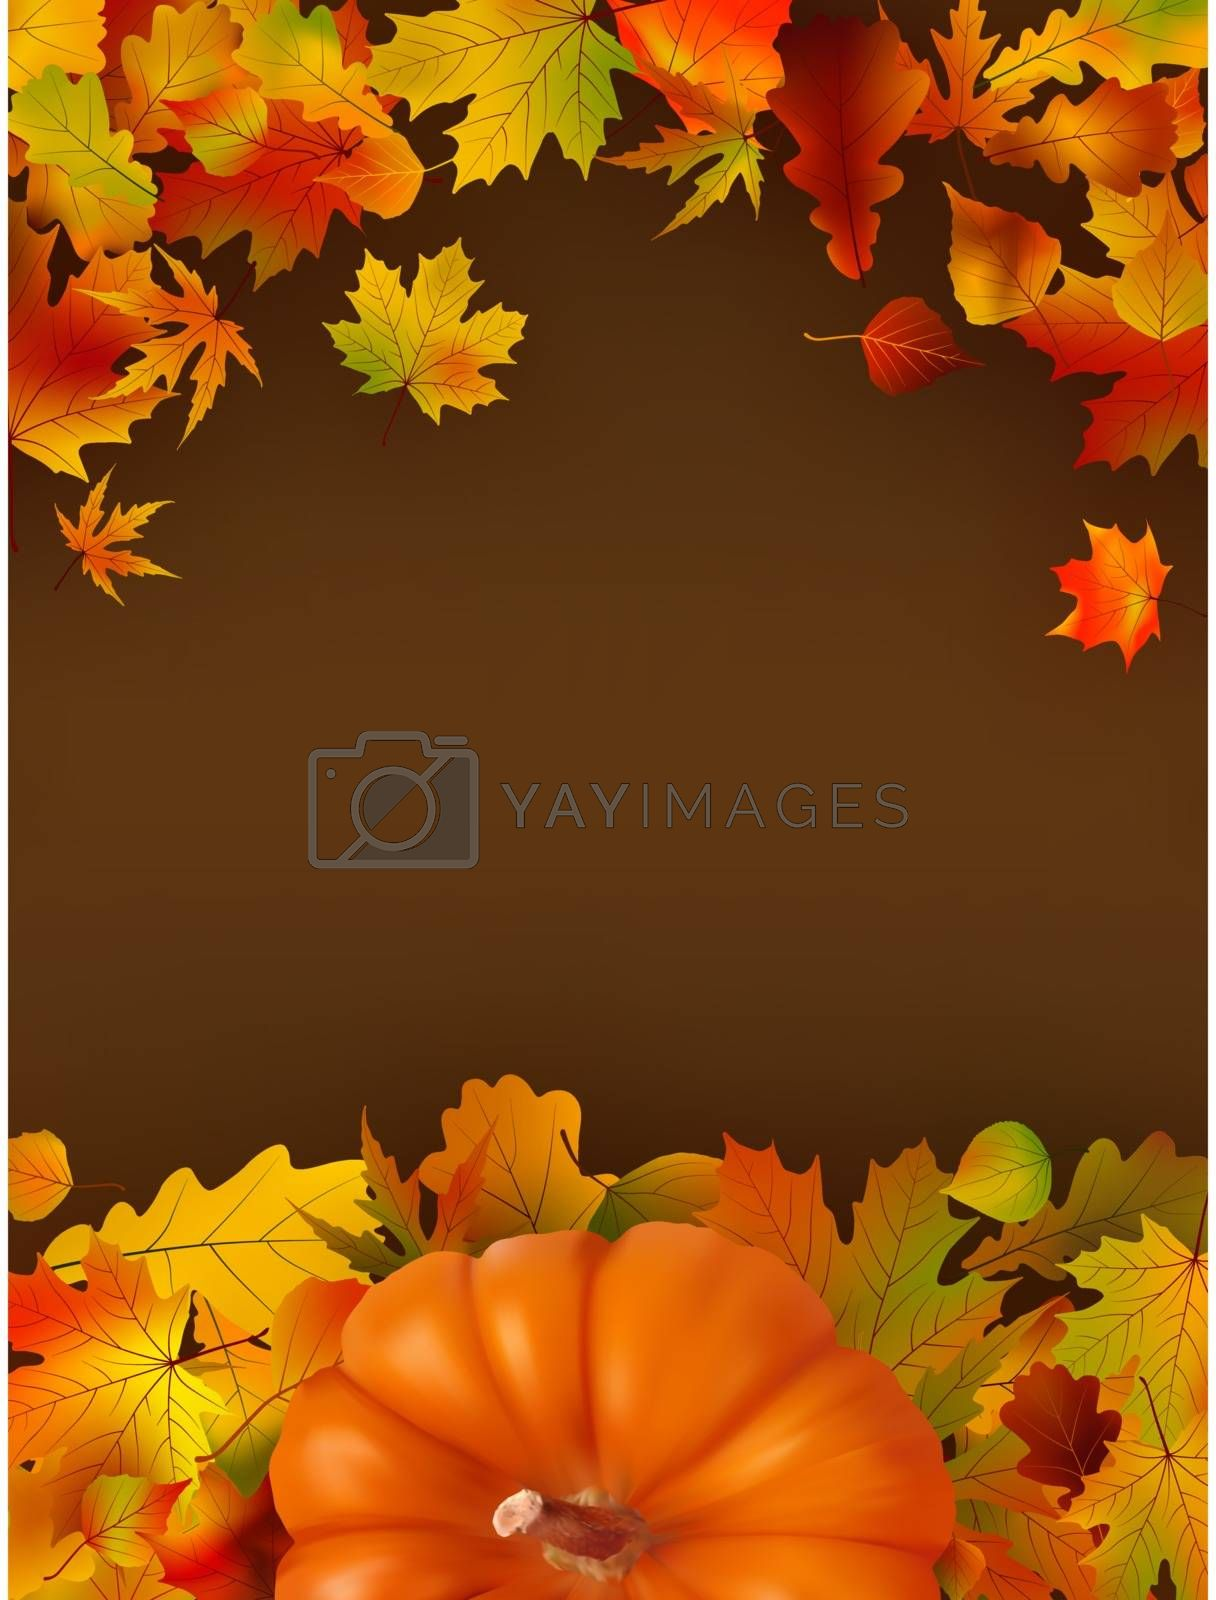 Abstract autumn background with leaves. EPS 8 by Petrov_Vladimir